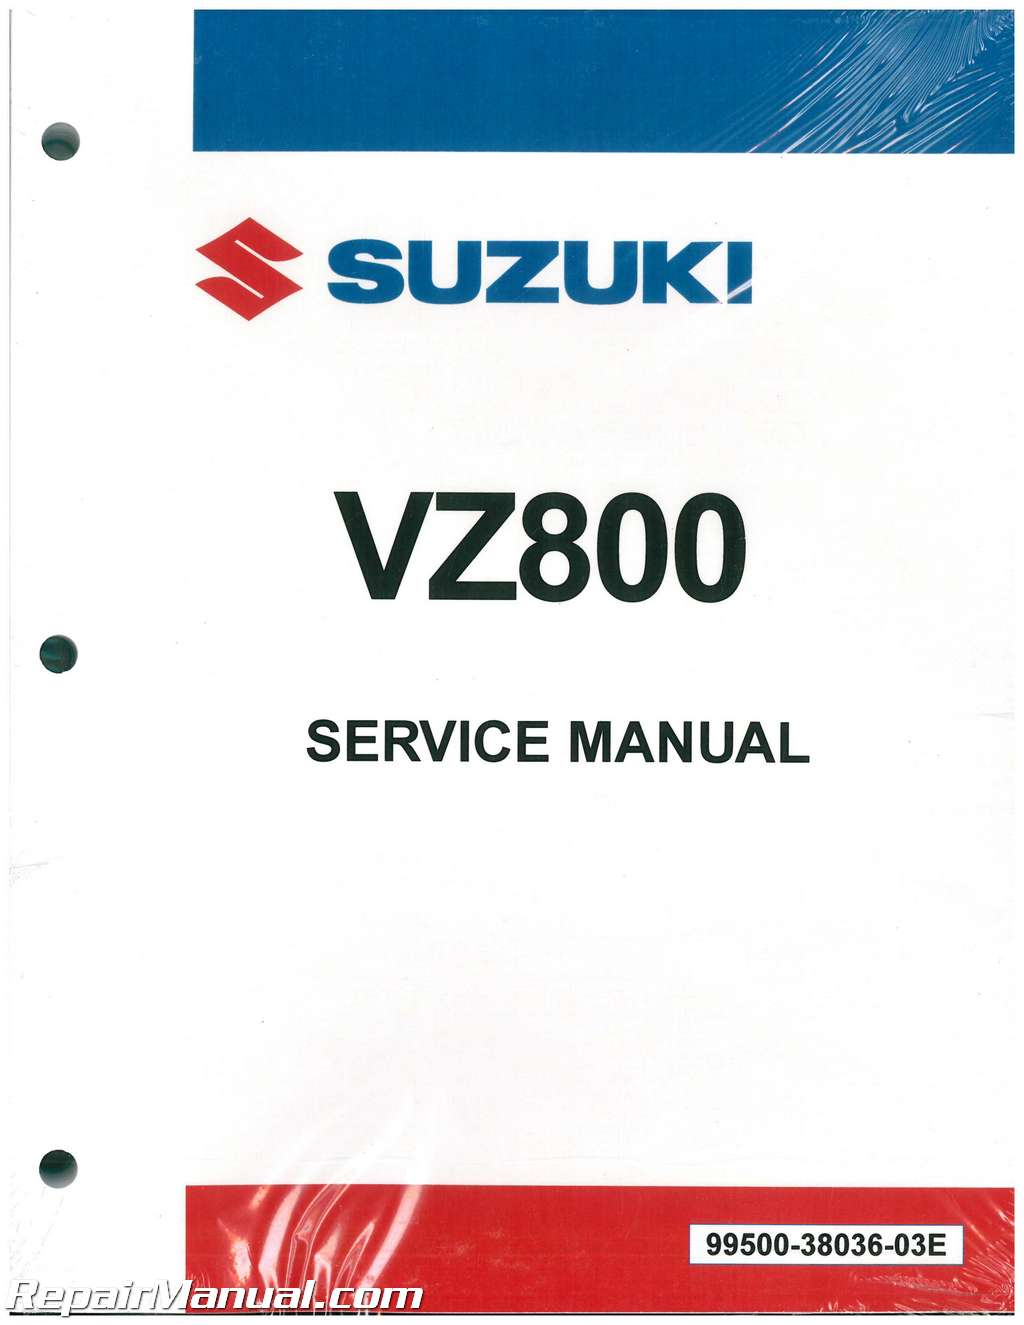 1997-2004 Suzuki VZ800 Motorcycle Service Manual